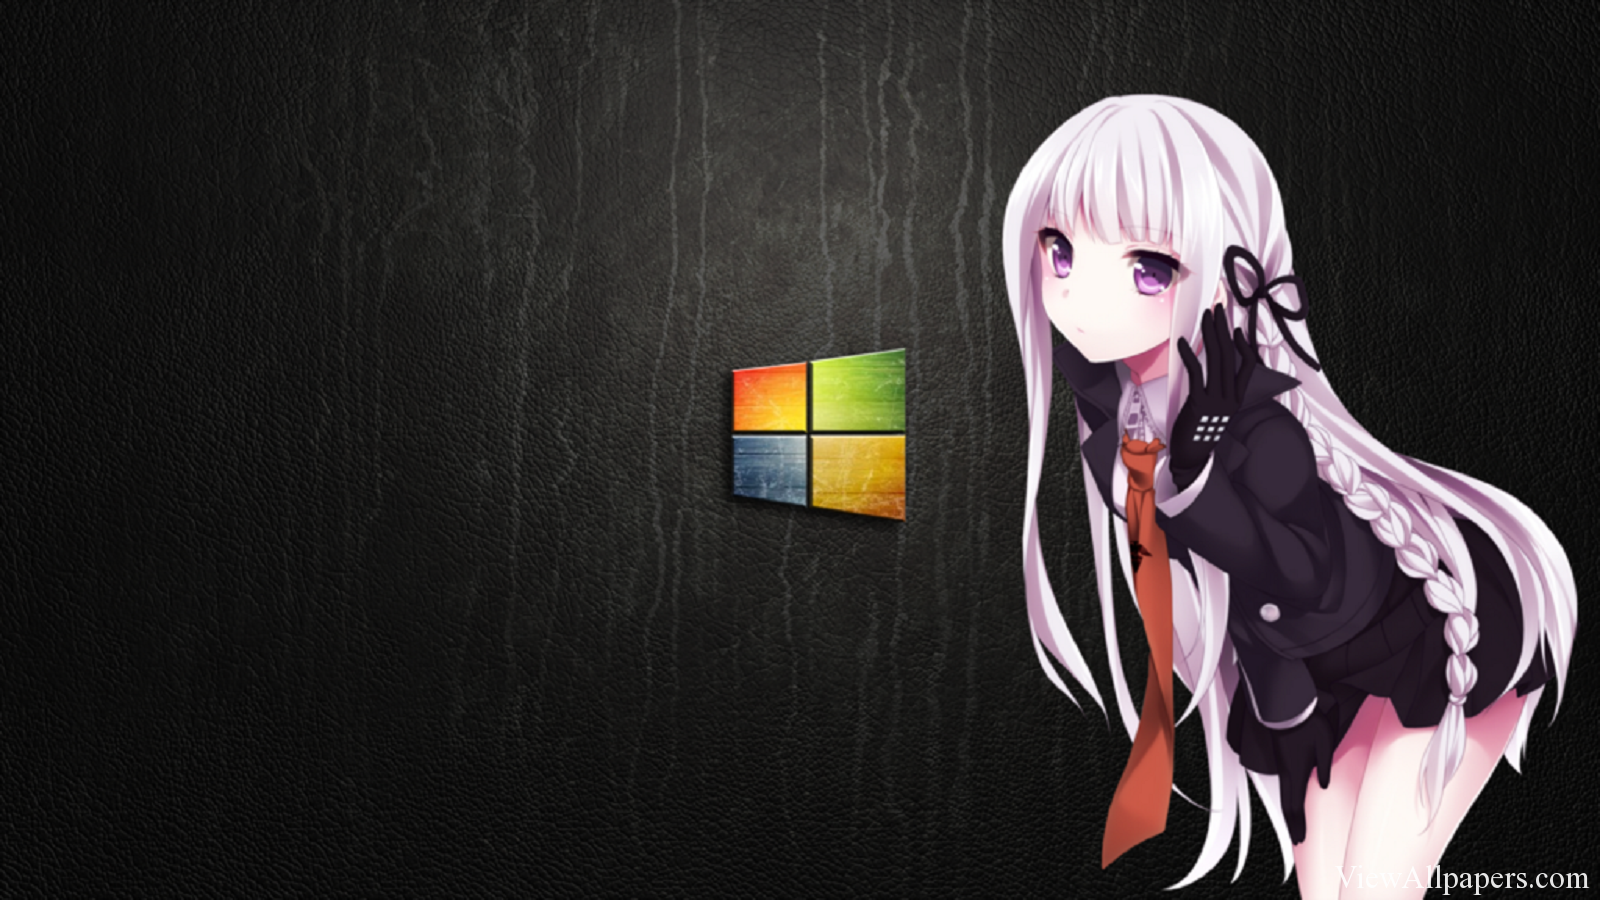 Windows 10 Wallpaper Anime Mywallpapers Site In 2020 Hd Anime Wallpapers Cool Anime Wallpapers Anime Wallpaper